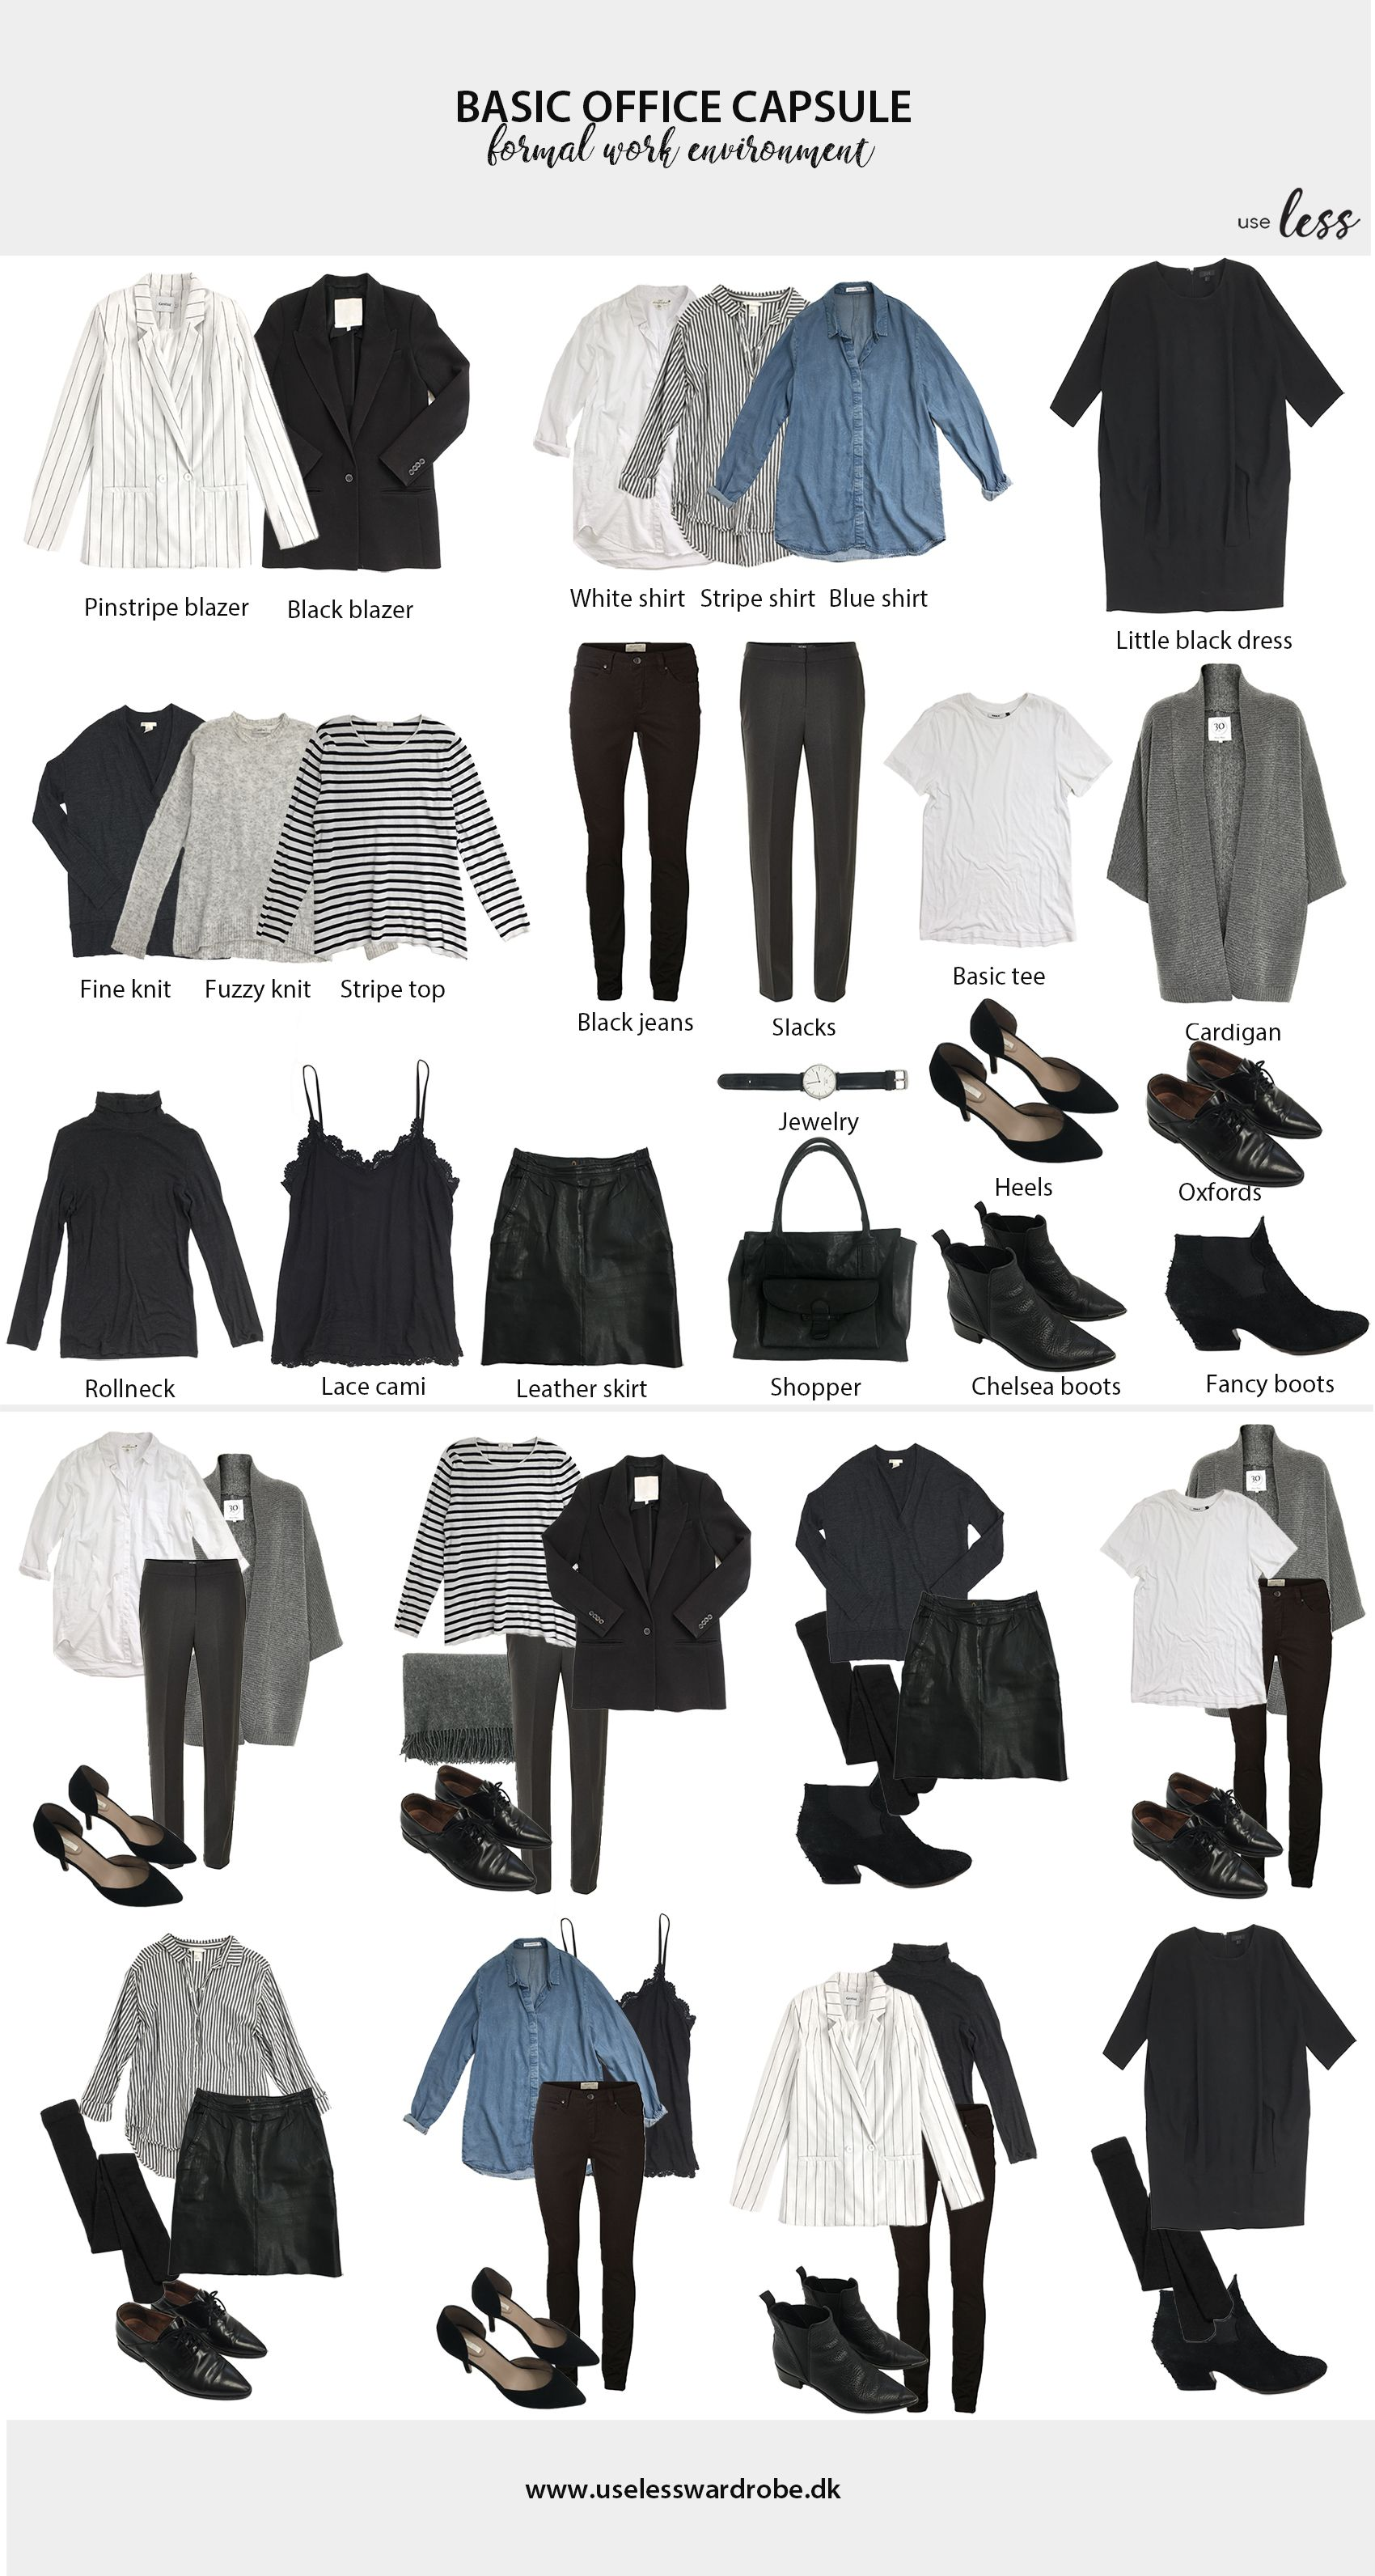 Capsule Wardrobe 2020 Fall.How To Dress For Different Work Environments In 2019